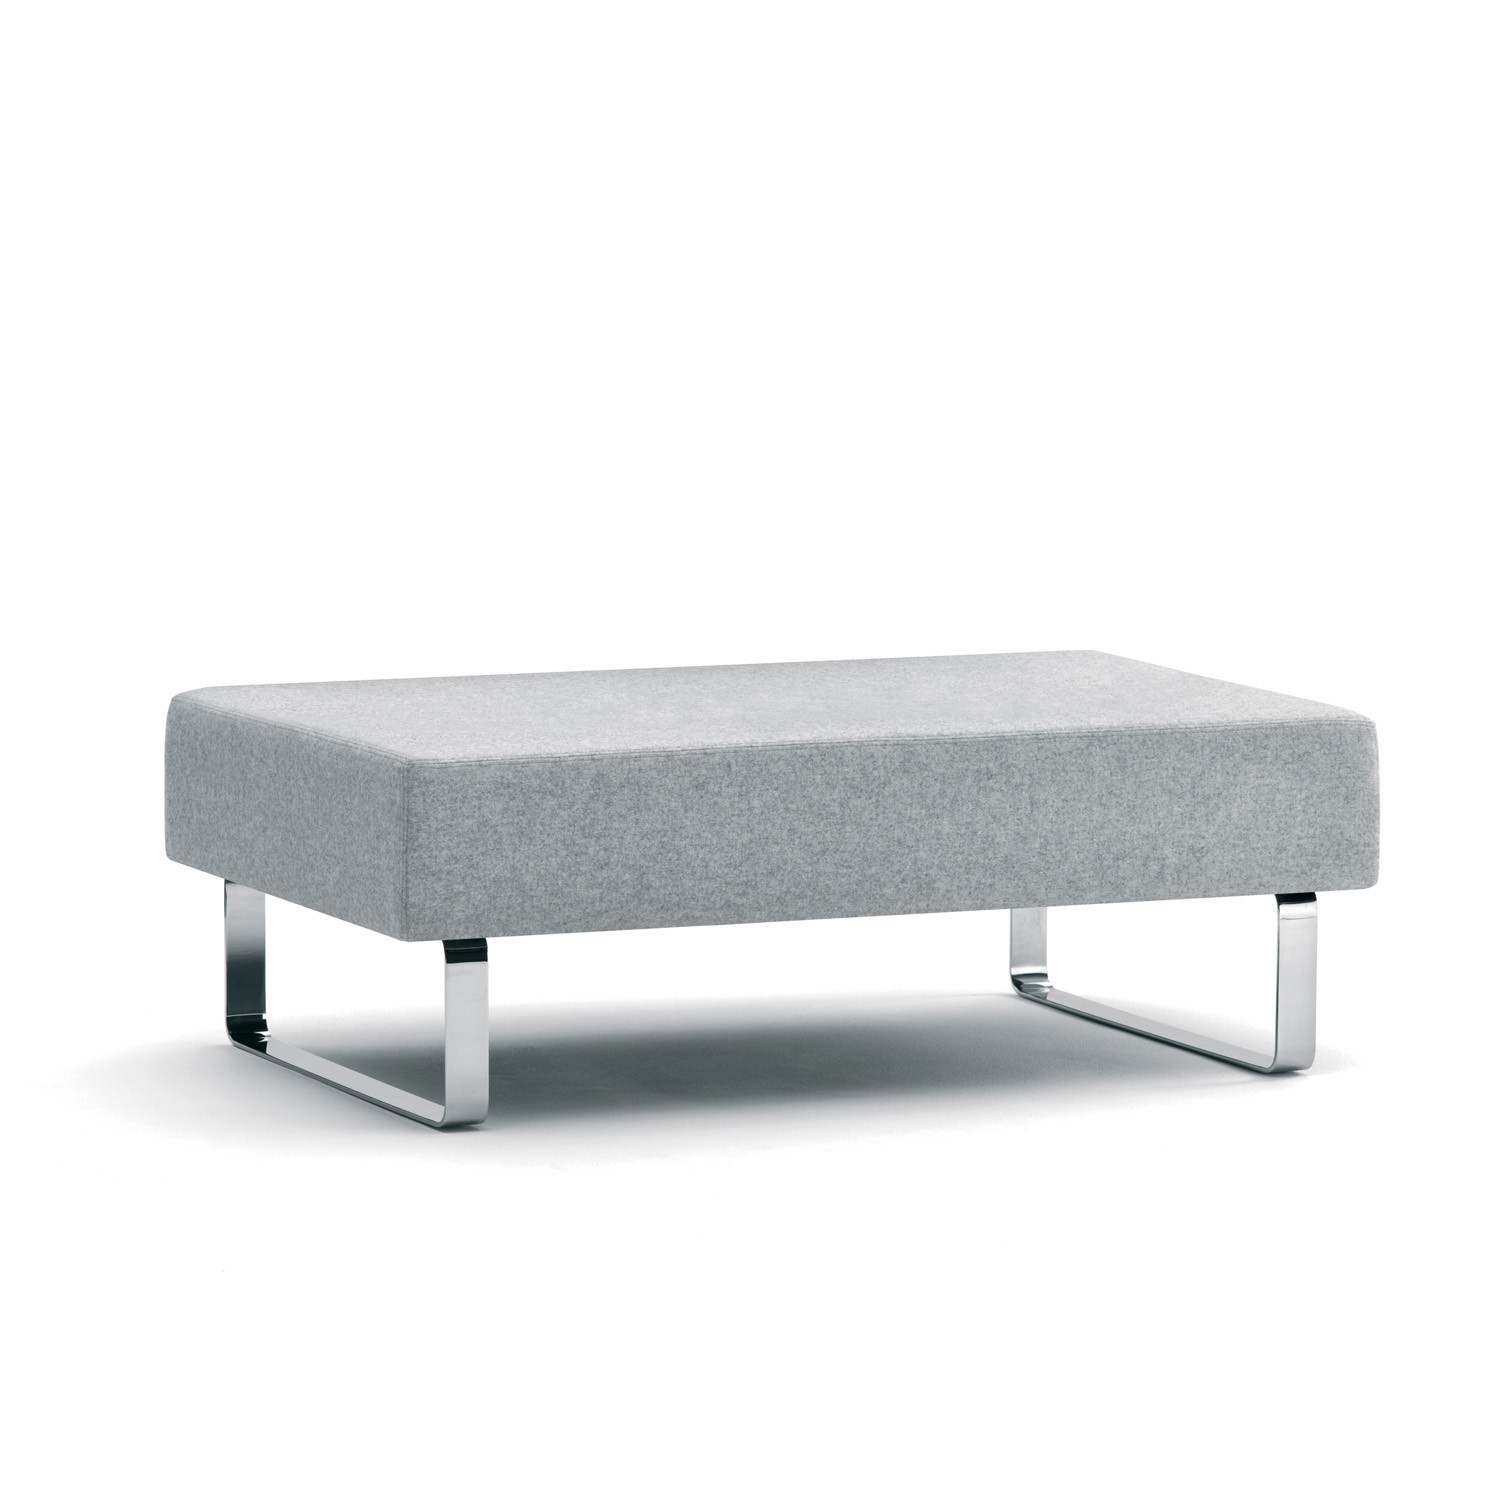 Intro Modular Seating by Pledge